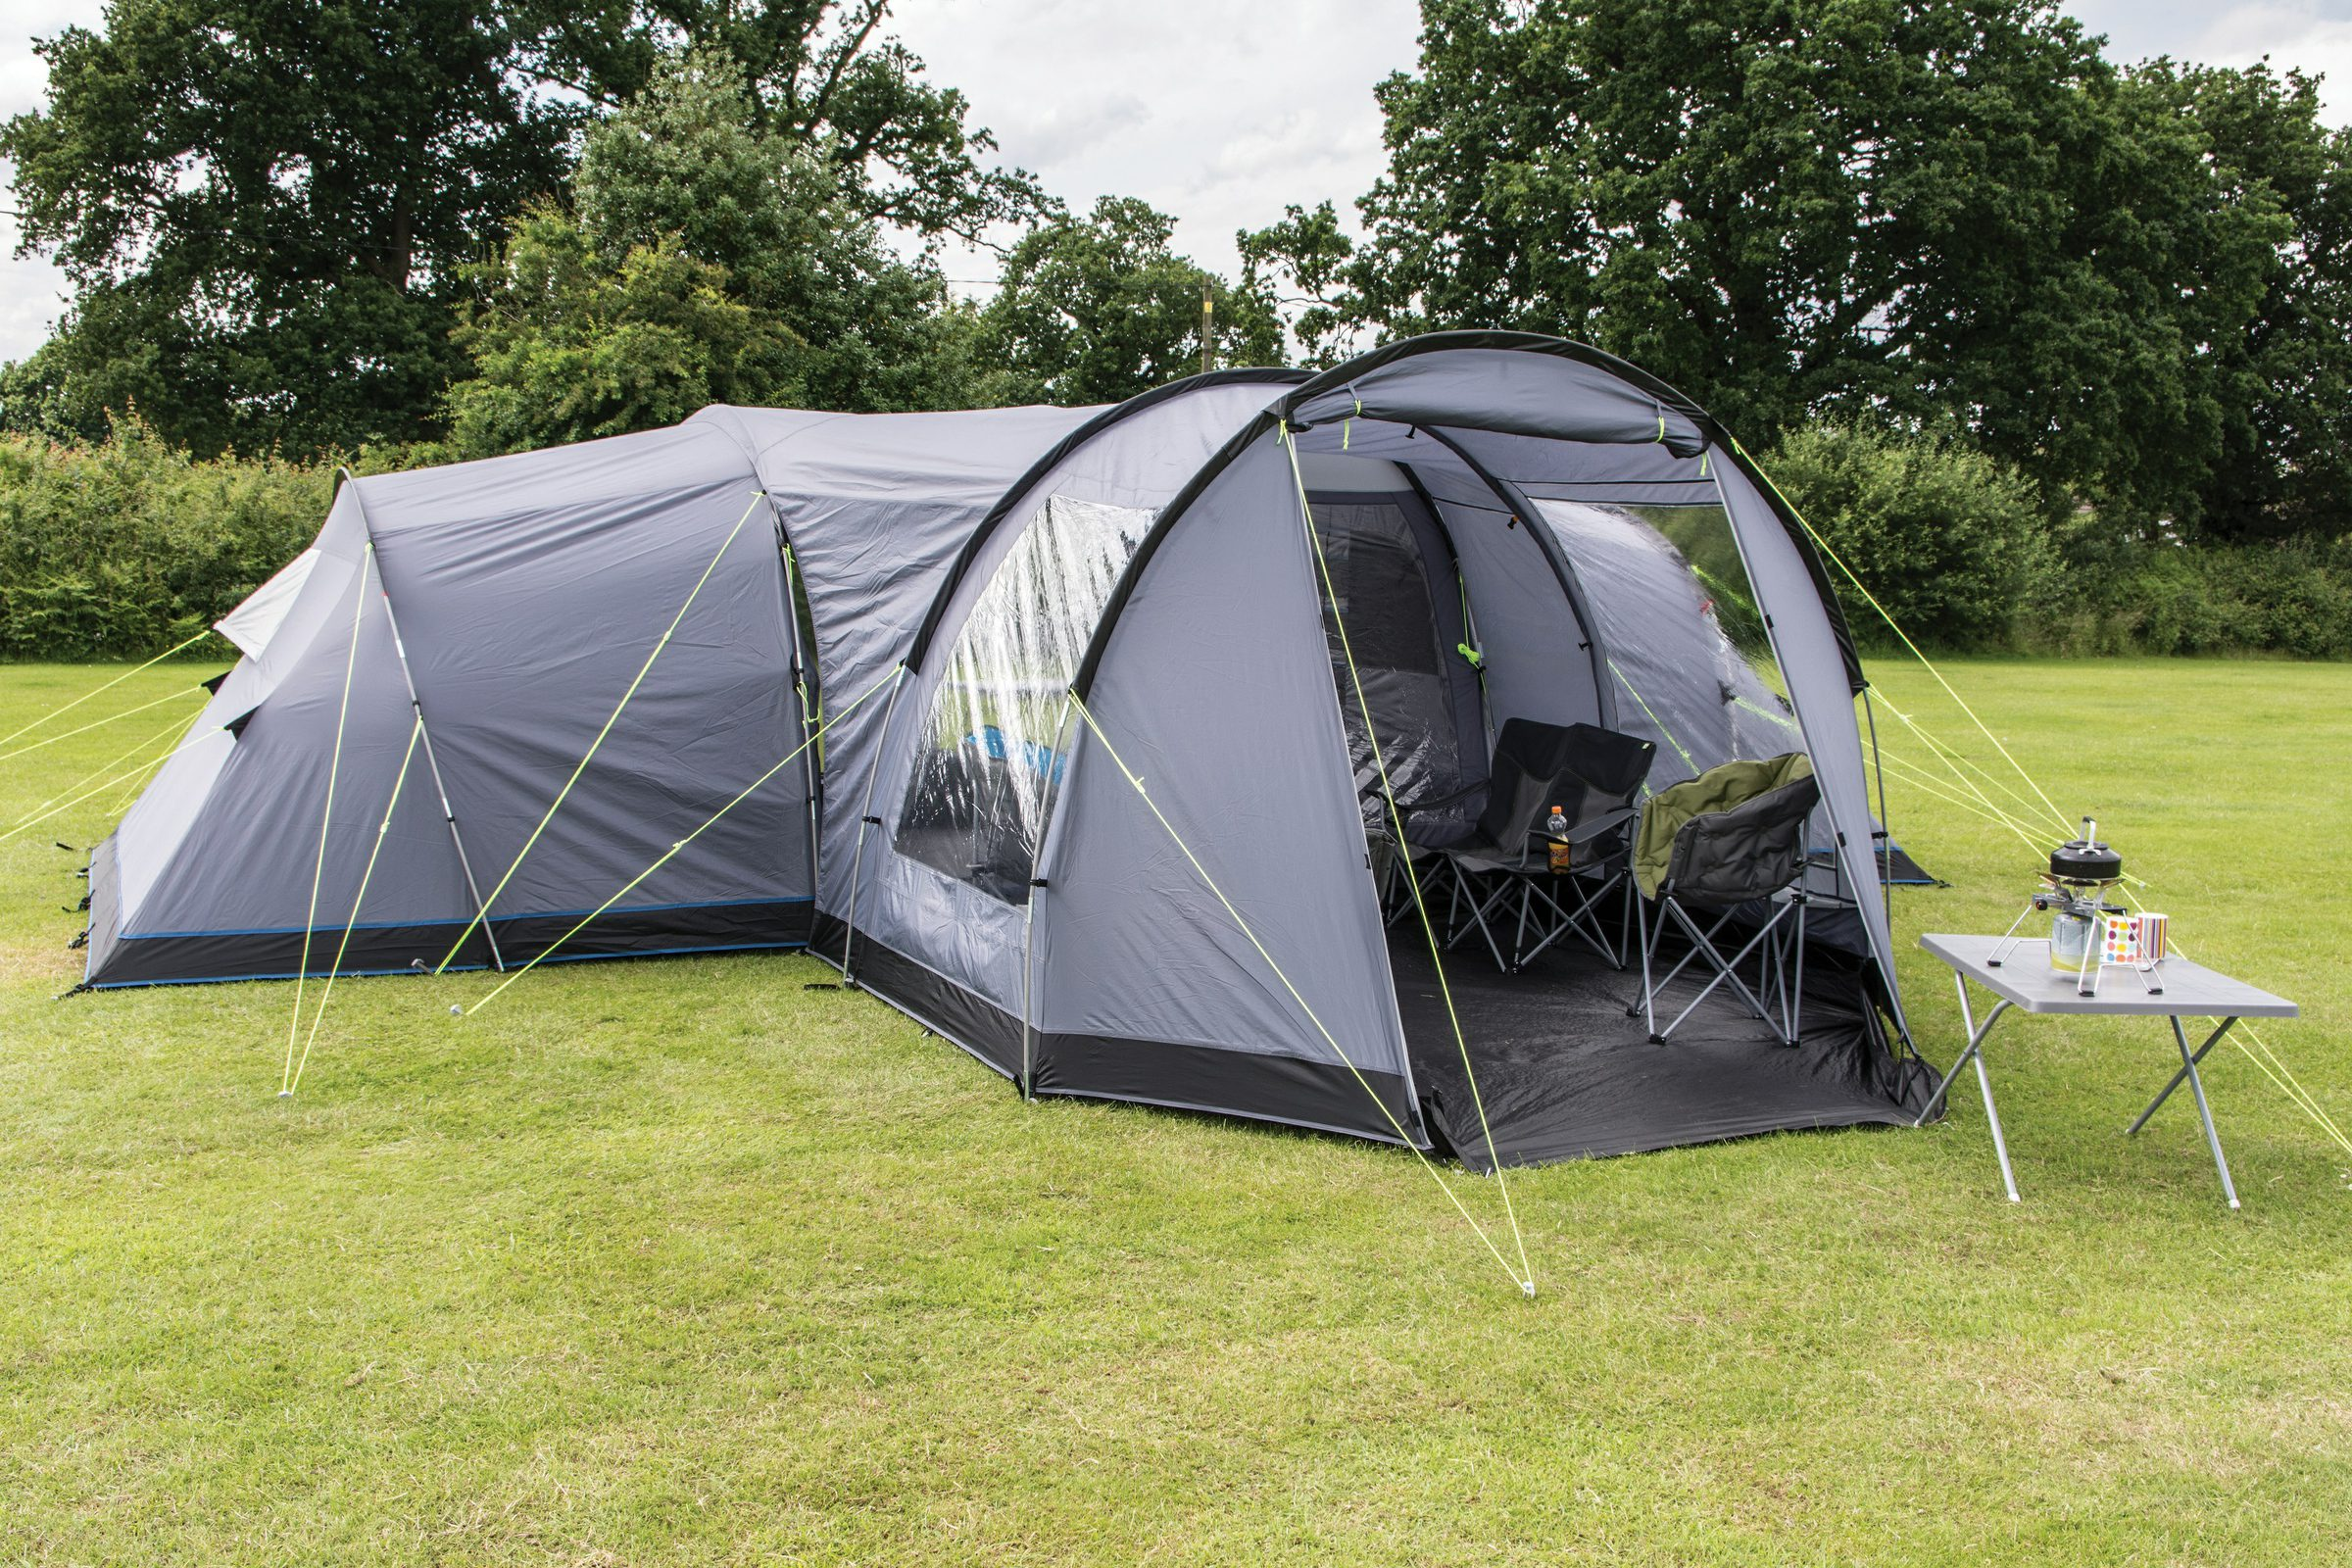 Kampa watergate 8 tent side canopy